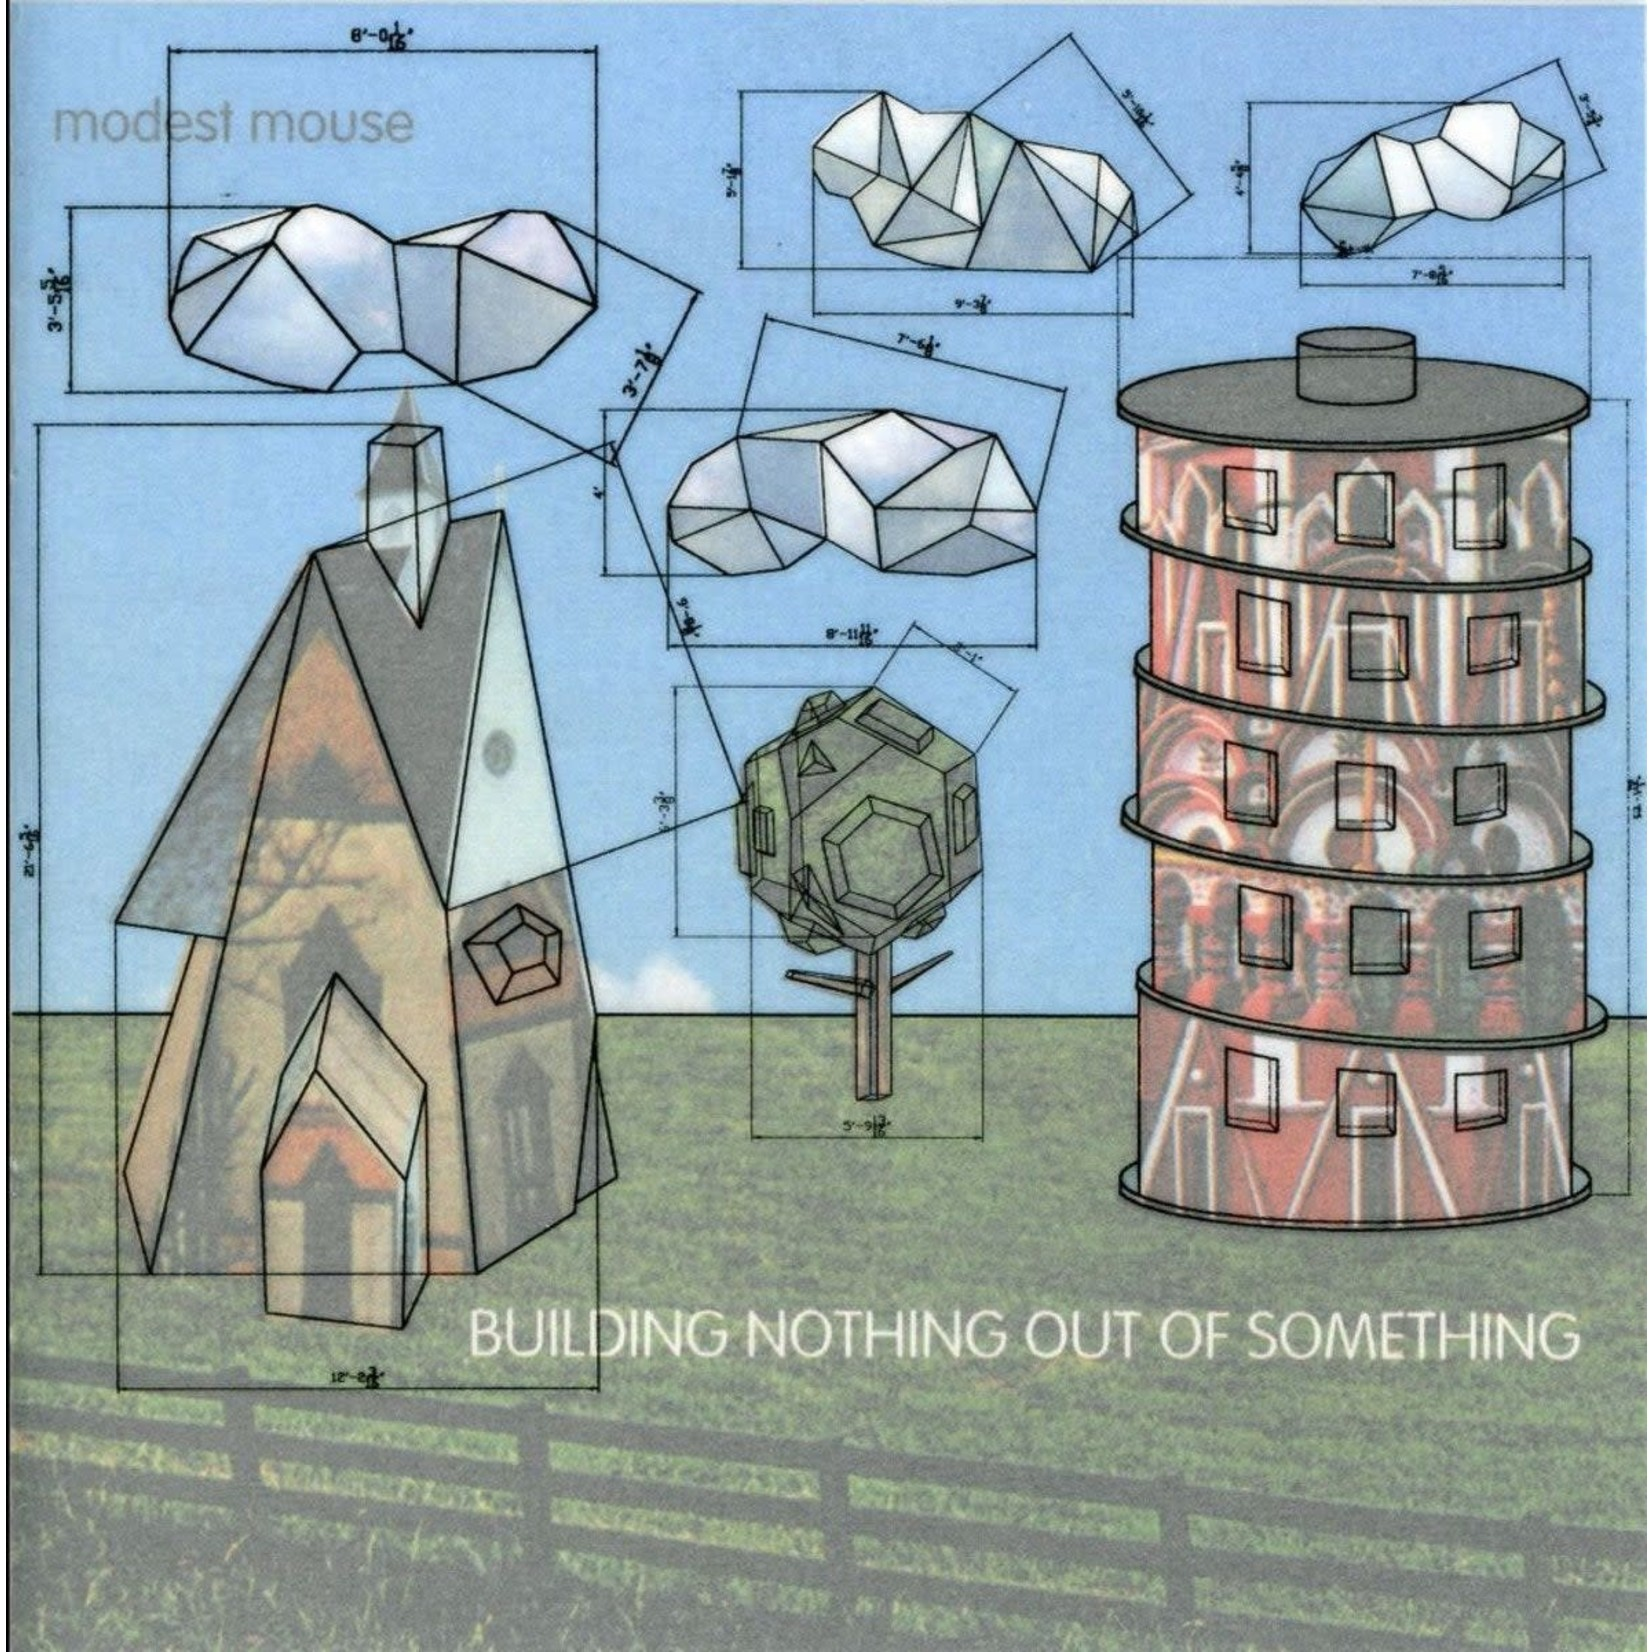 [New] Modest Mouse: Building Nothing Out Of Something